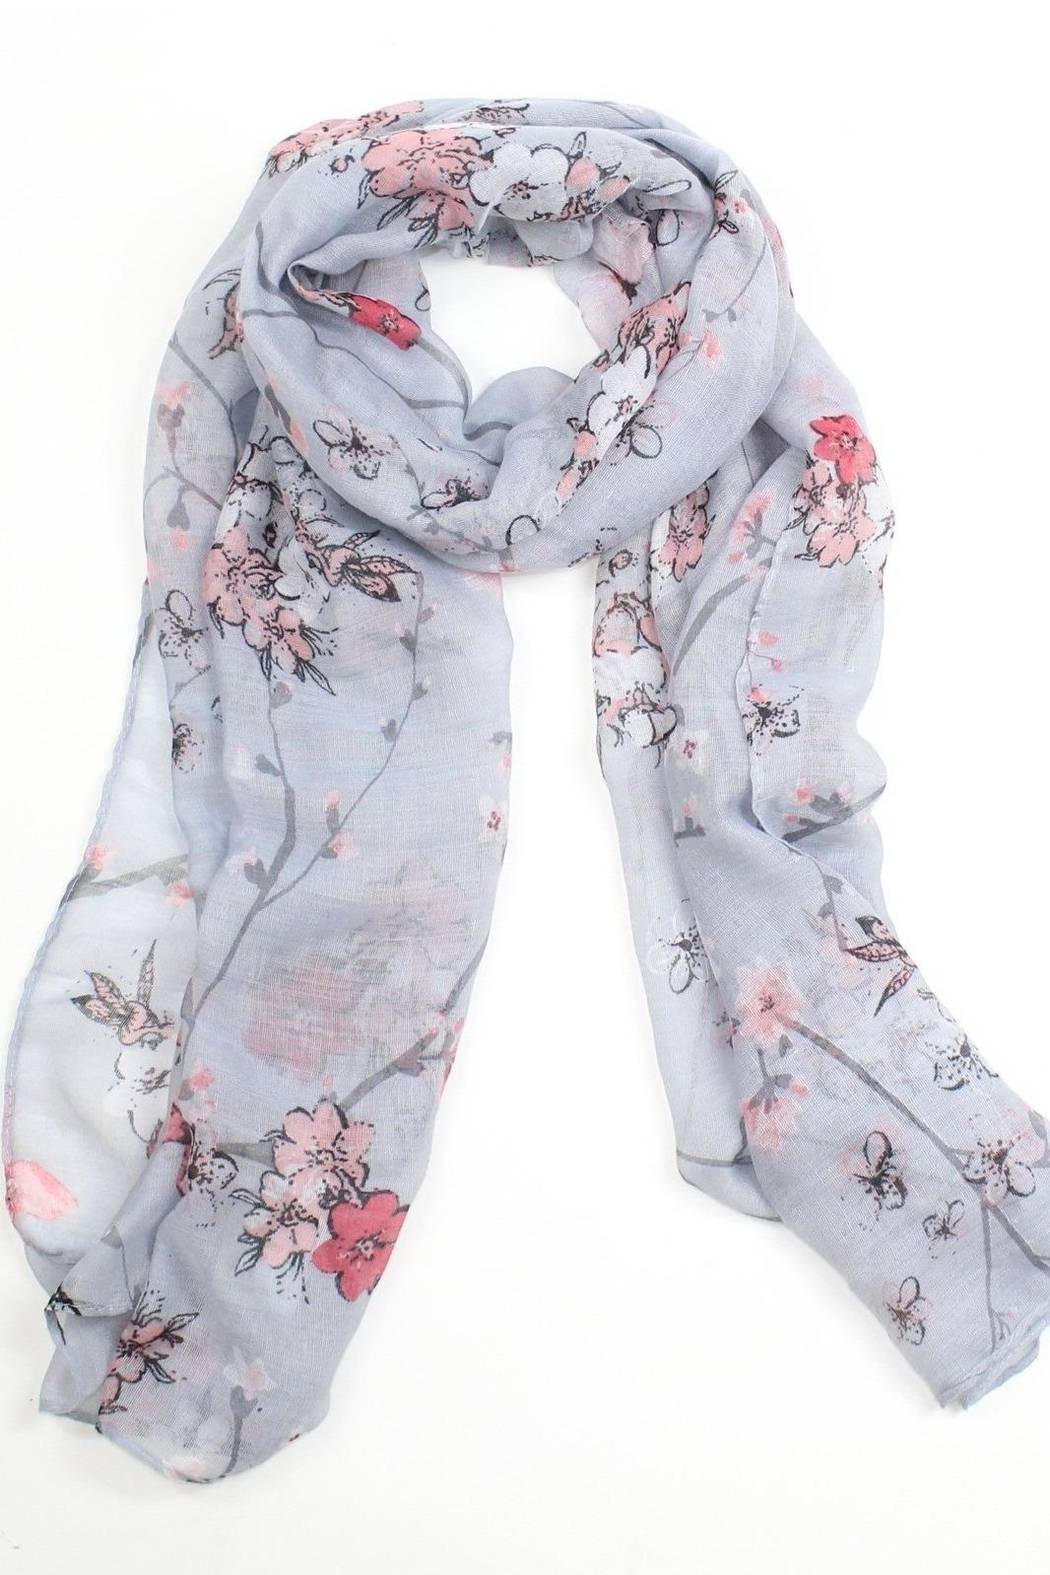 81218d485 Pink Poodle Boutique Cherry Blossom Scarf from Glasgow by Pink ...